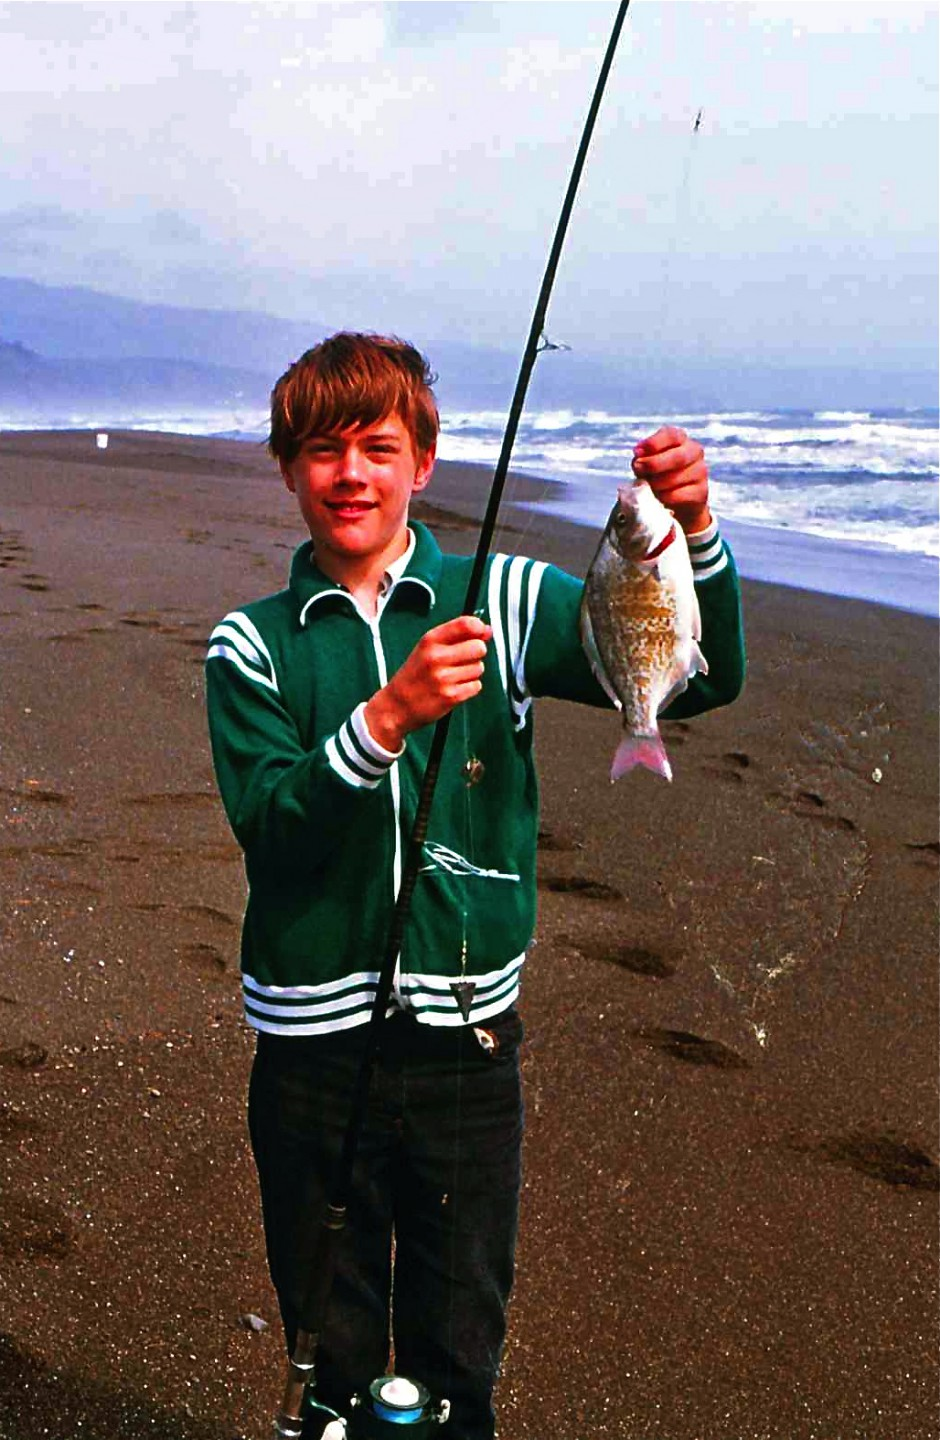 Mike_Redtail_Surfperch_4